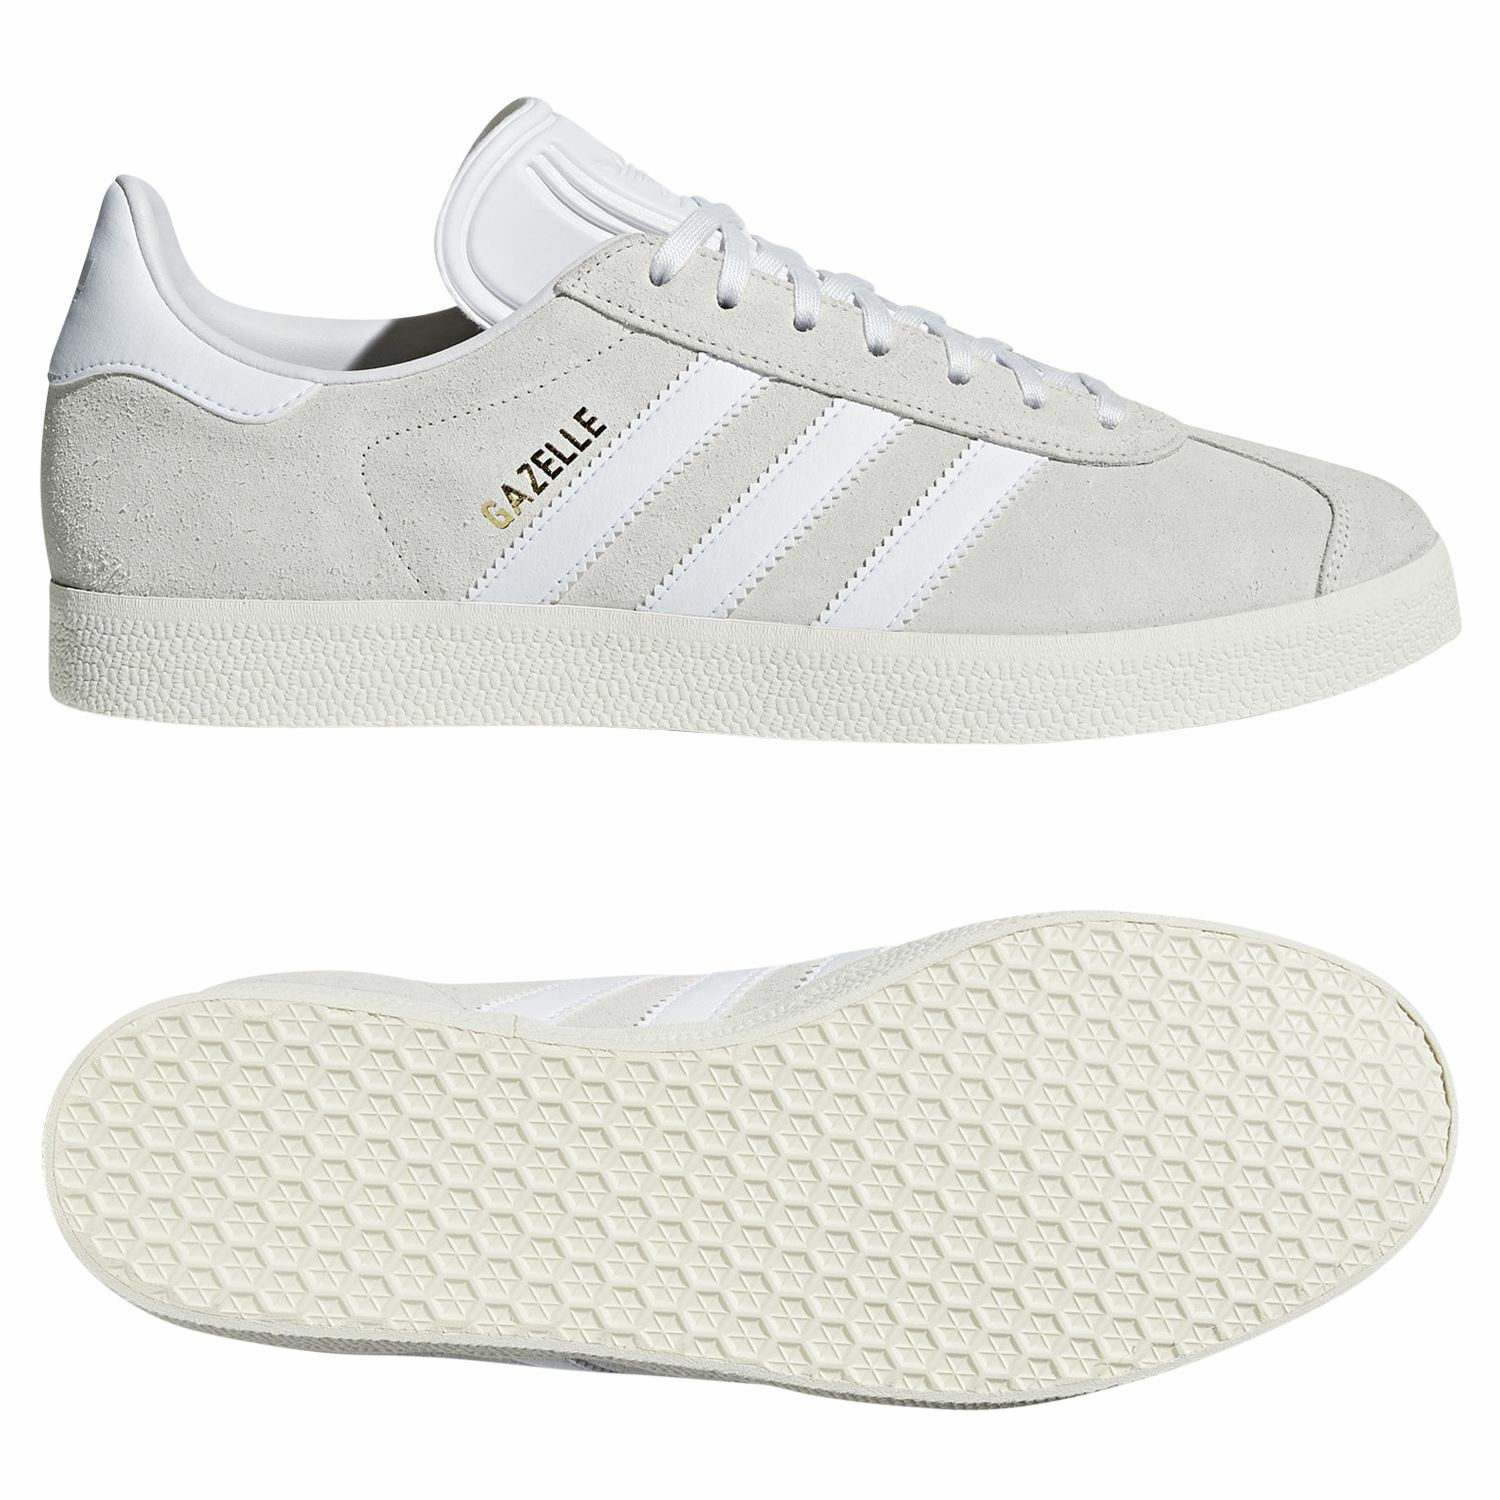 Adidas ORIGINALS MEN'S GAZELLE TRAINER WHITE SNEAKERS SHOES SMART CASUAL RETRO